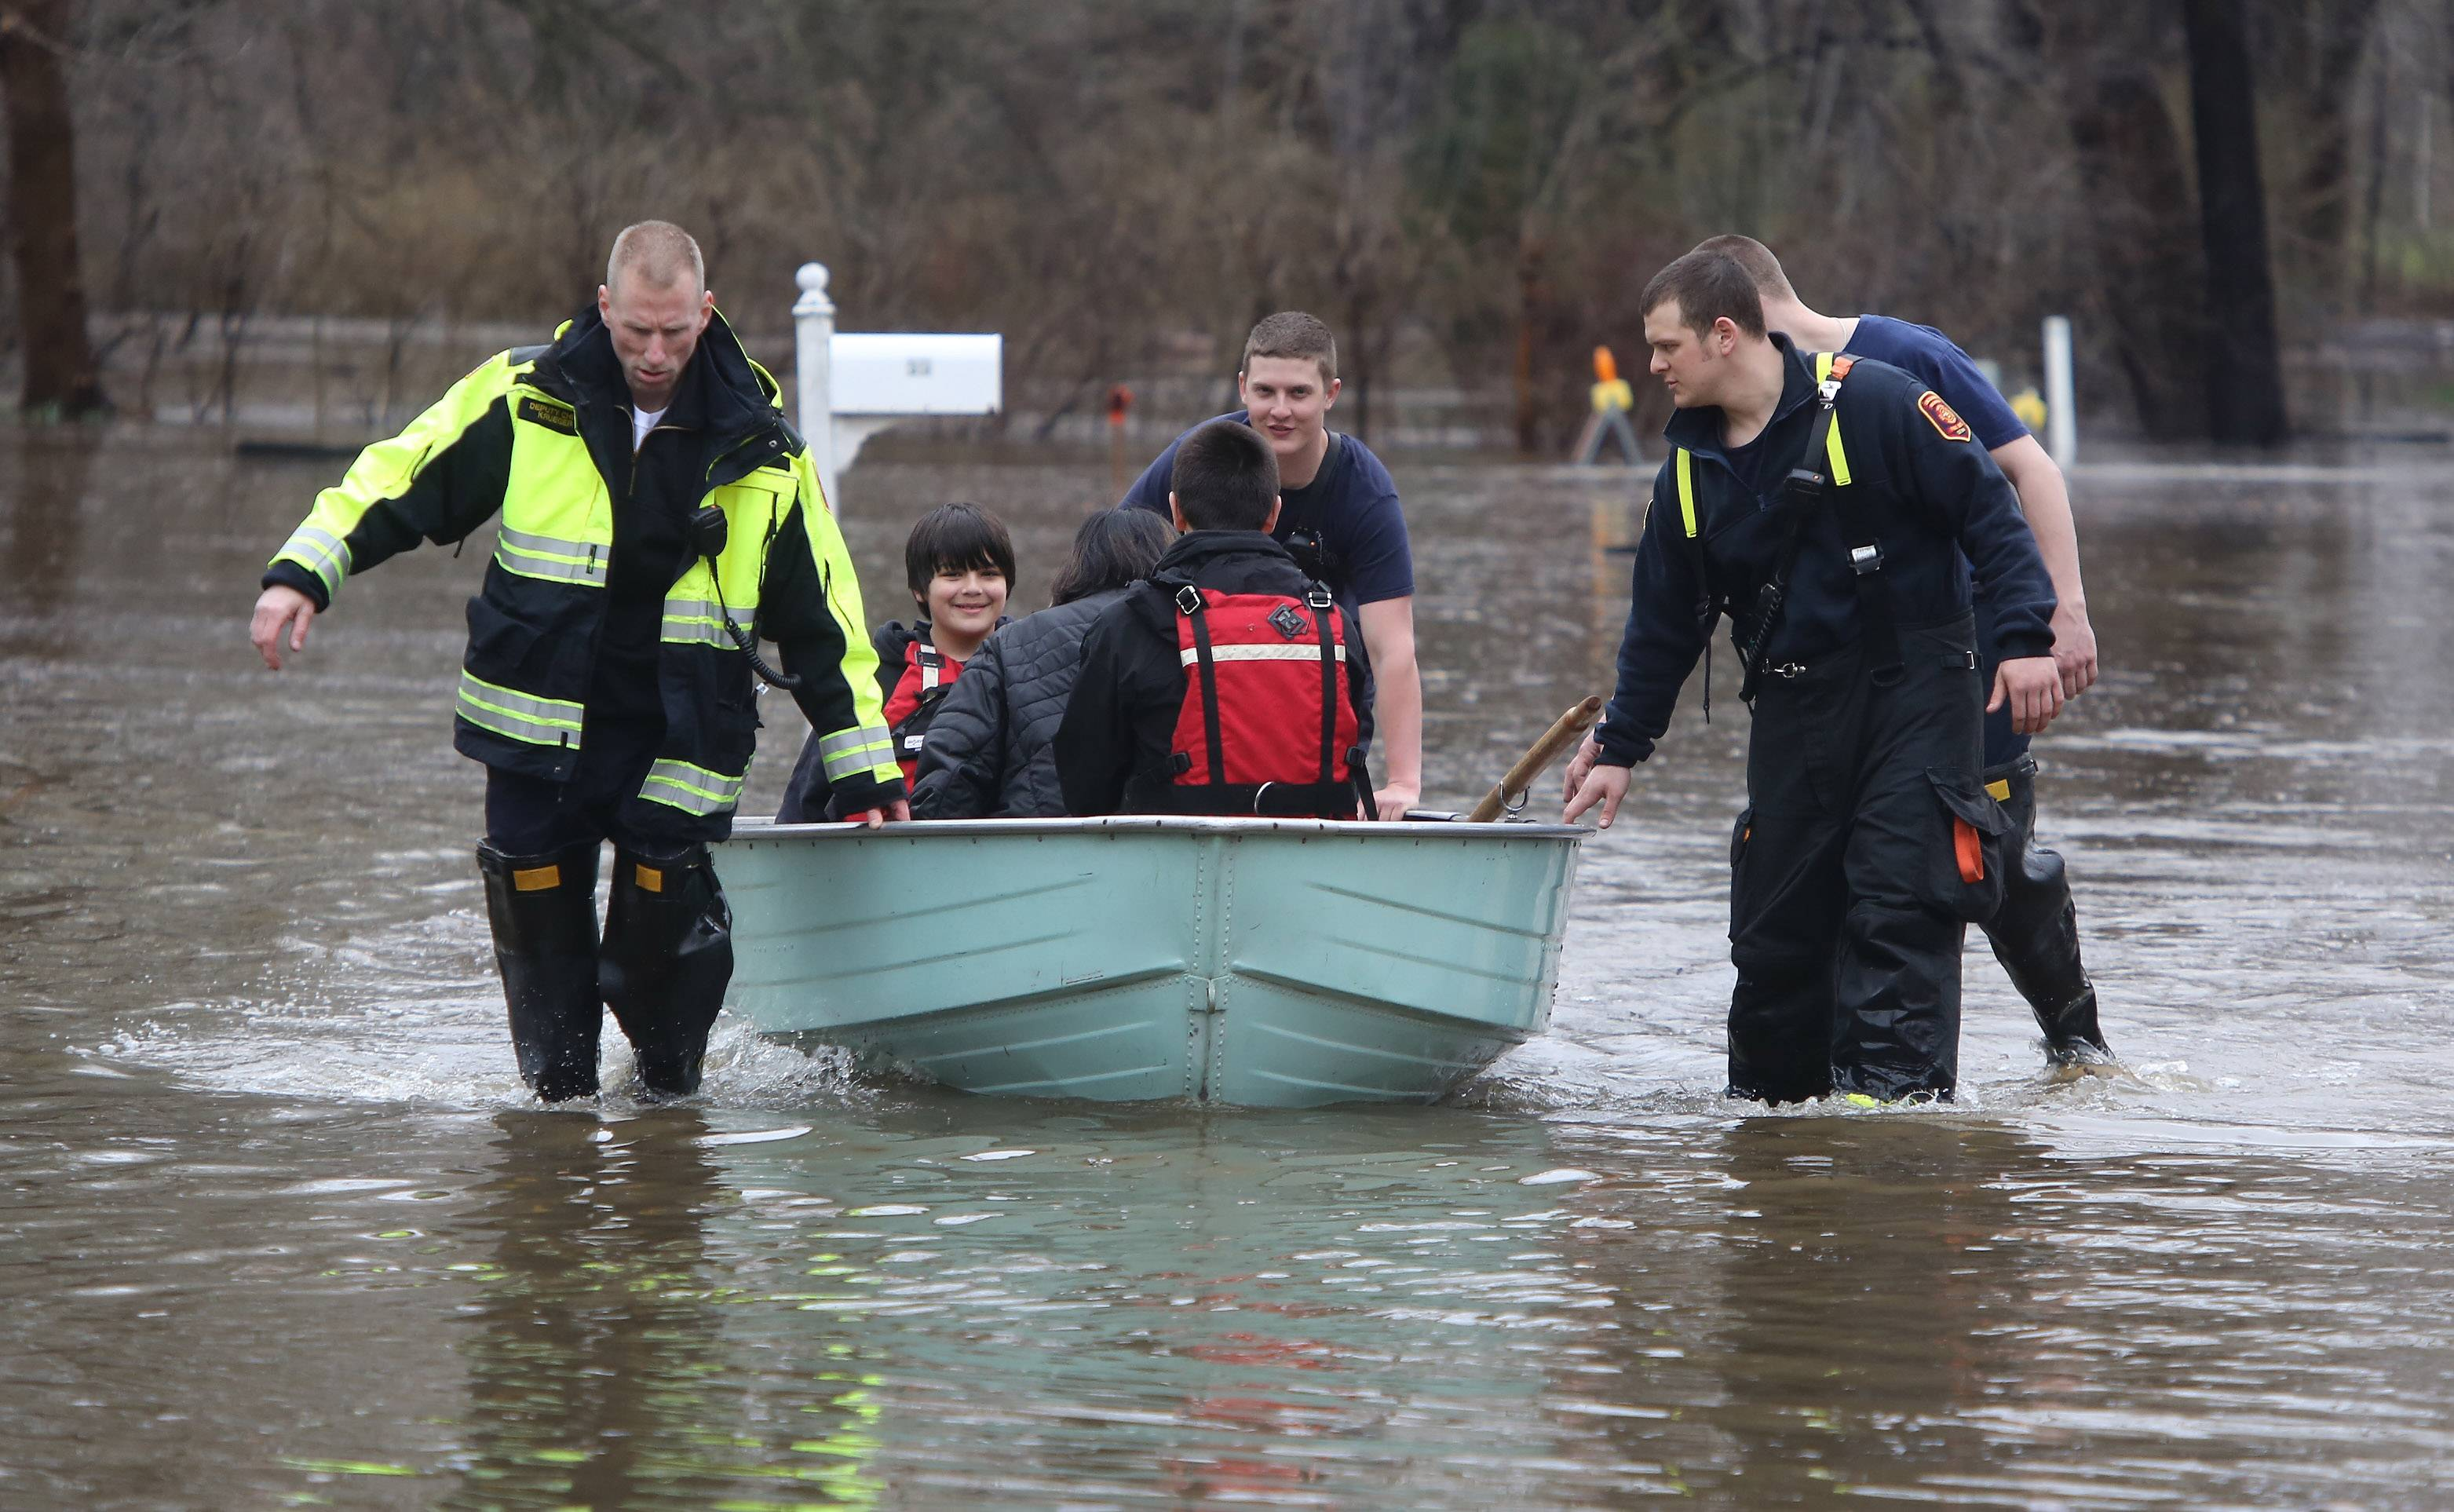 Lincolnshire-Riverwoods Fire Department firefighters assist residents as the leave their homes last year due to flooding of the Des Plaines River.